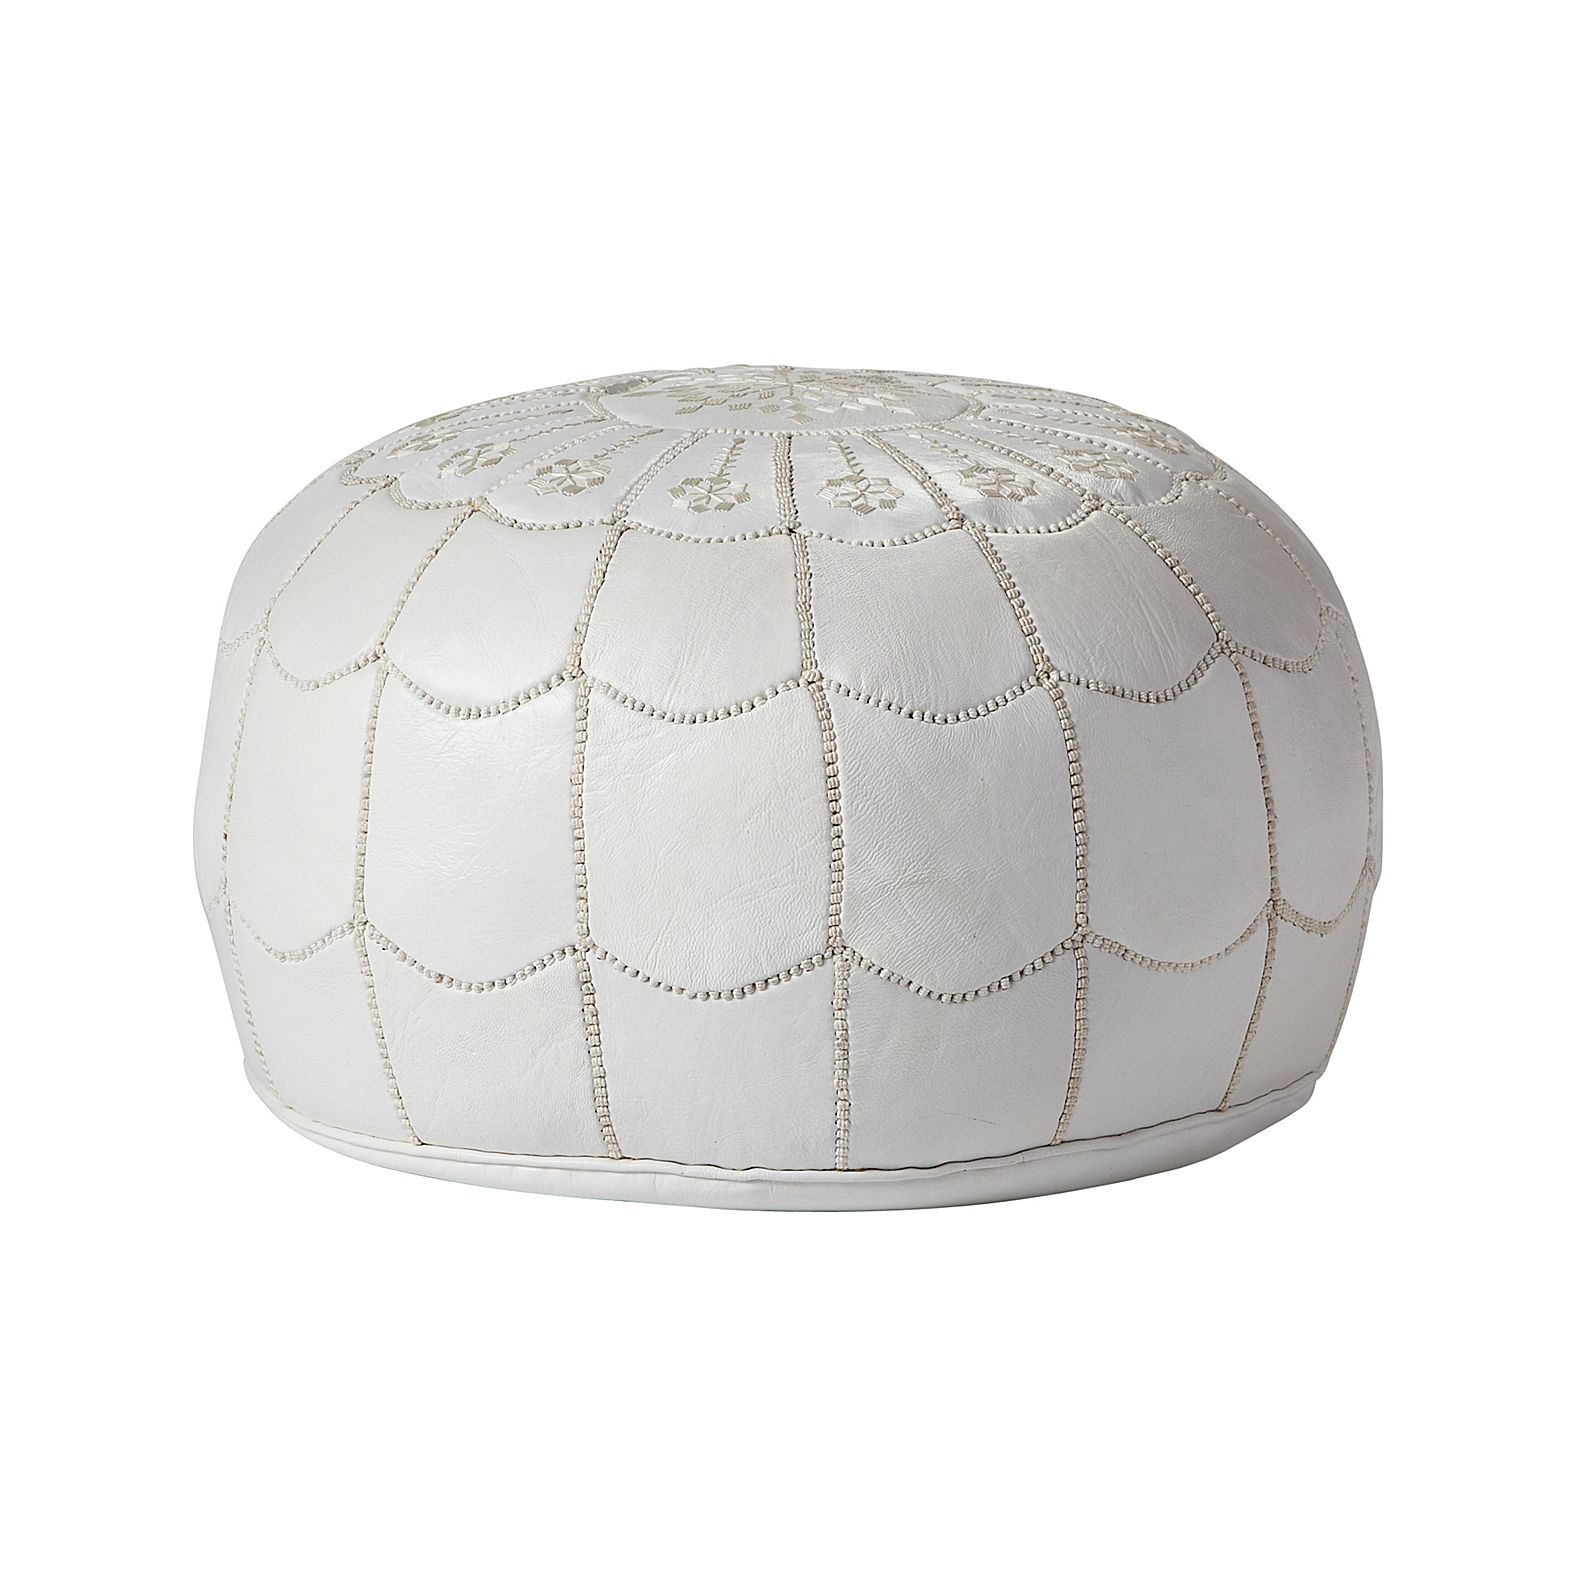 Moroccan Leather Pouf Design Sit Down Pinterest Leather A Moroccan Pouf Is The Perfect Extra Seating Or Footstool For A